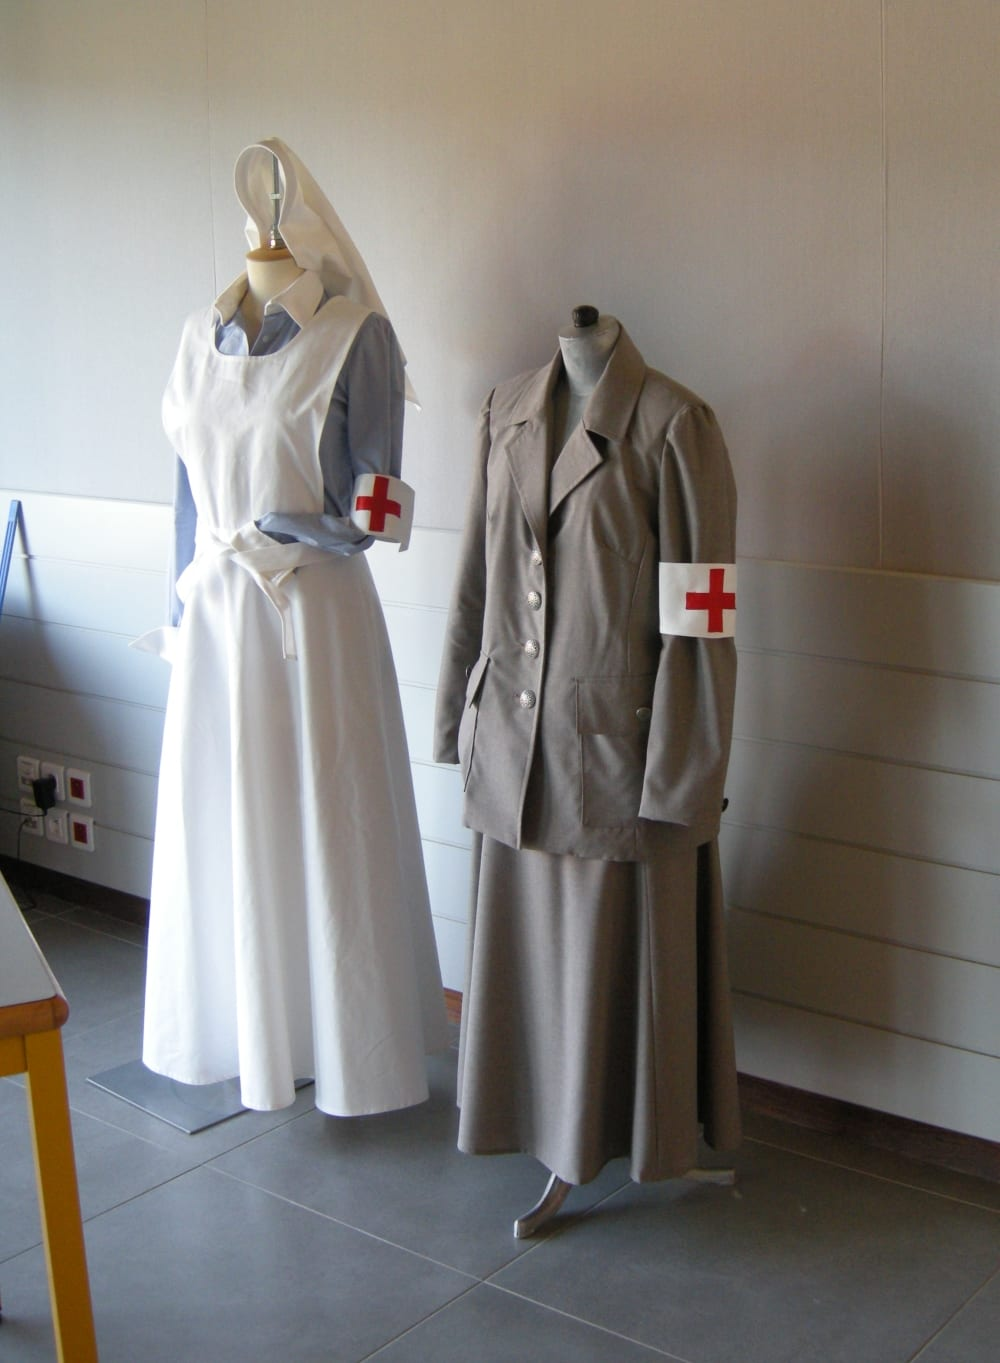 Uniforms made especially for the exhibition at Chanteloup